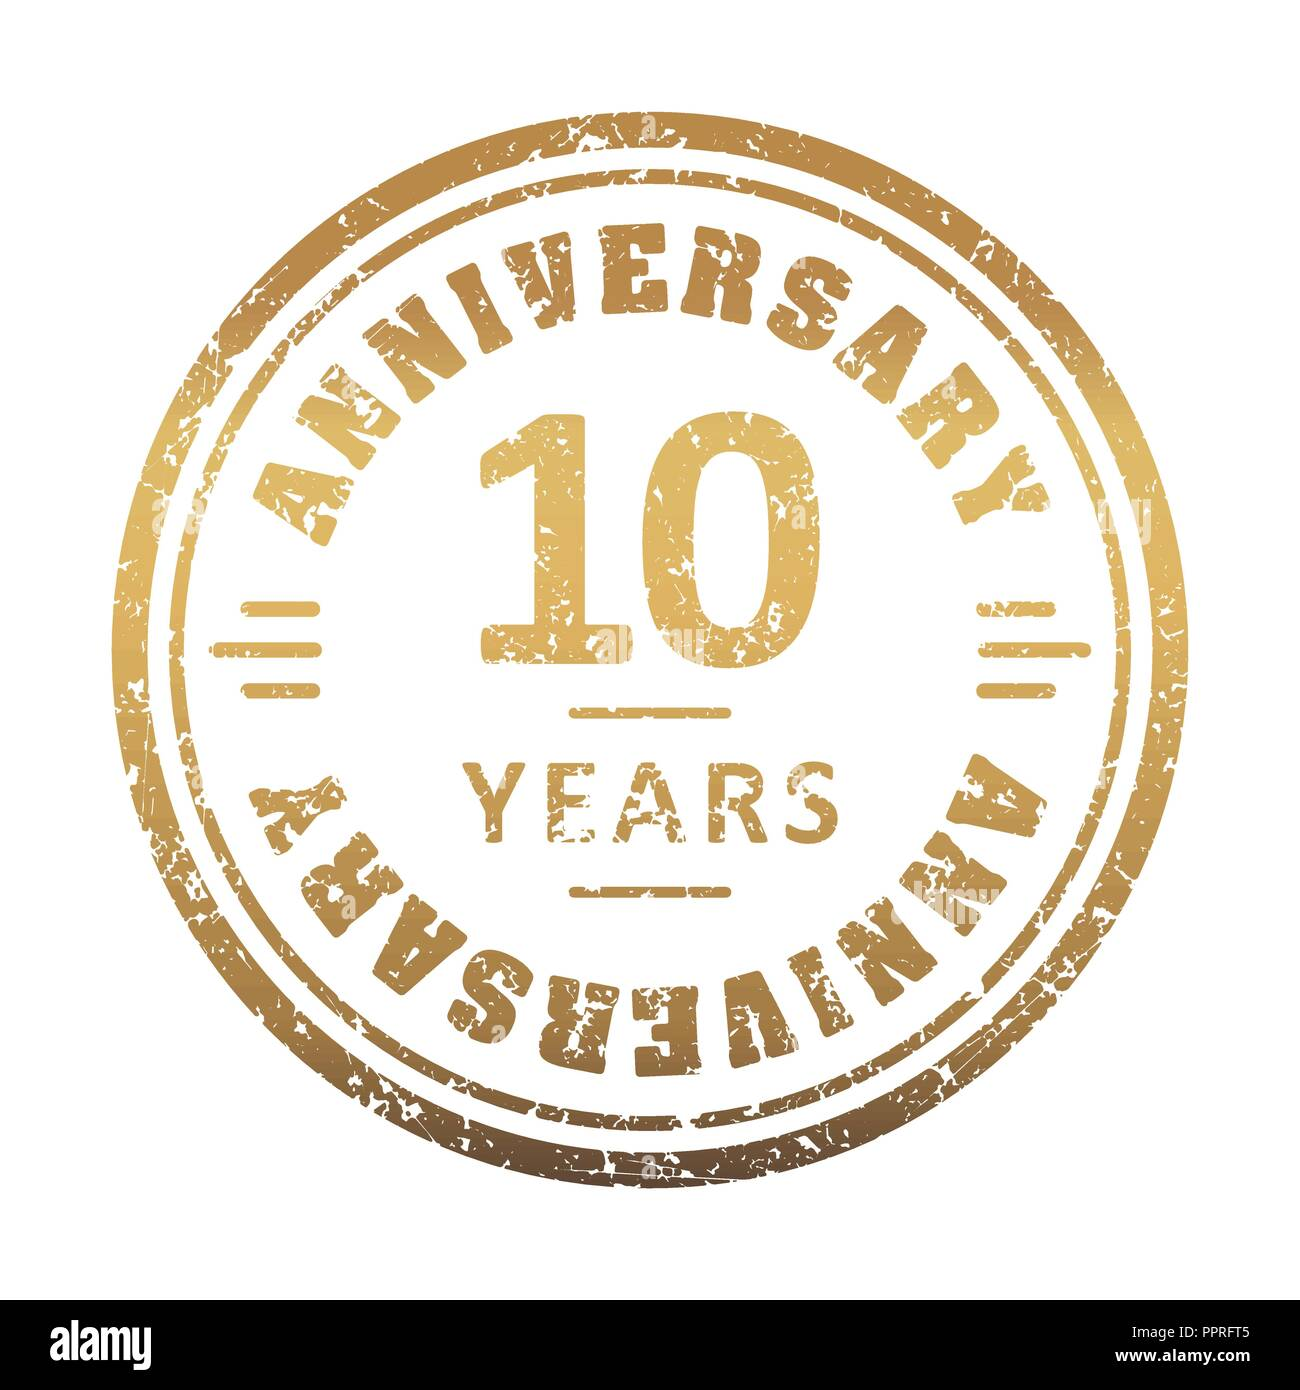 Vintage anniversary 10 year round grunge round stamp. Retro styled vector illustration. - Stock Vector